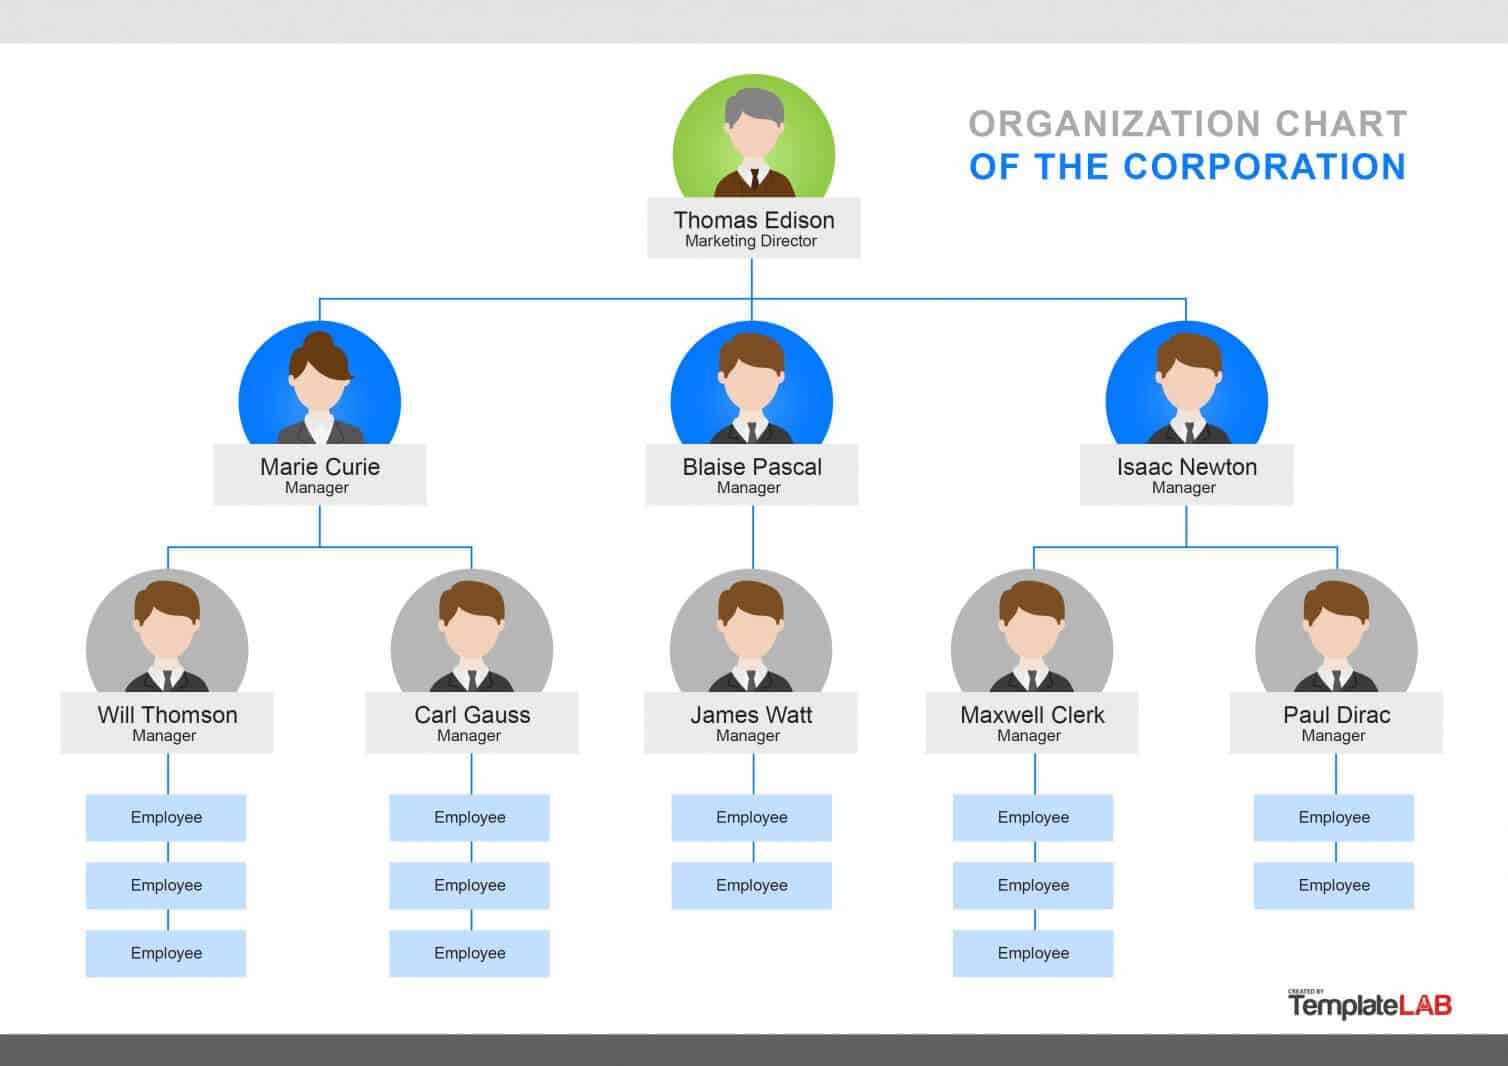 40 Organizational Chart Templates (Word, Excel, Powerpoint) Intended For Org Chart Template Word